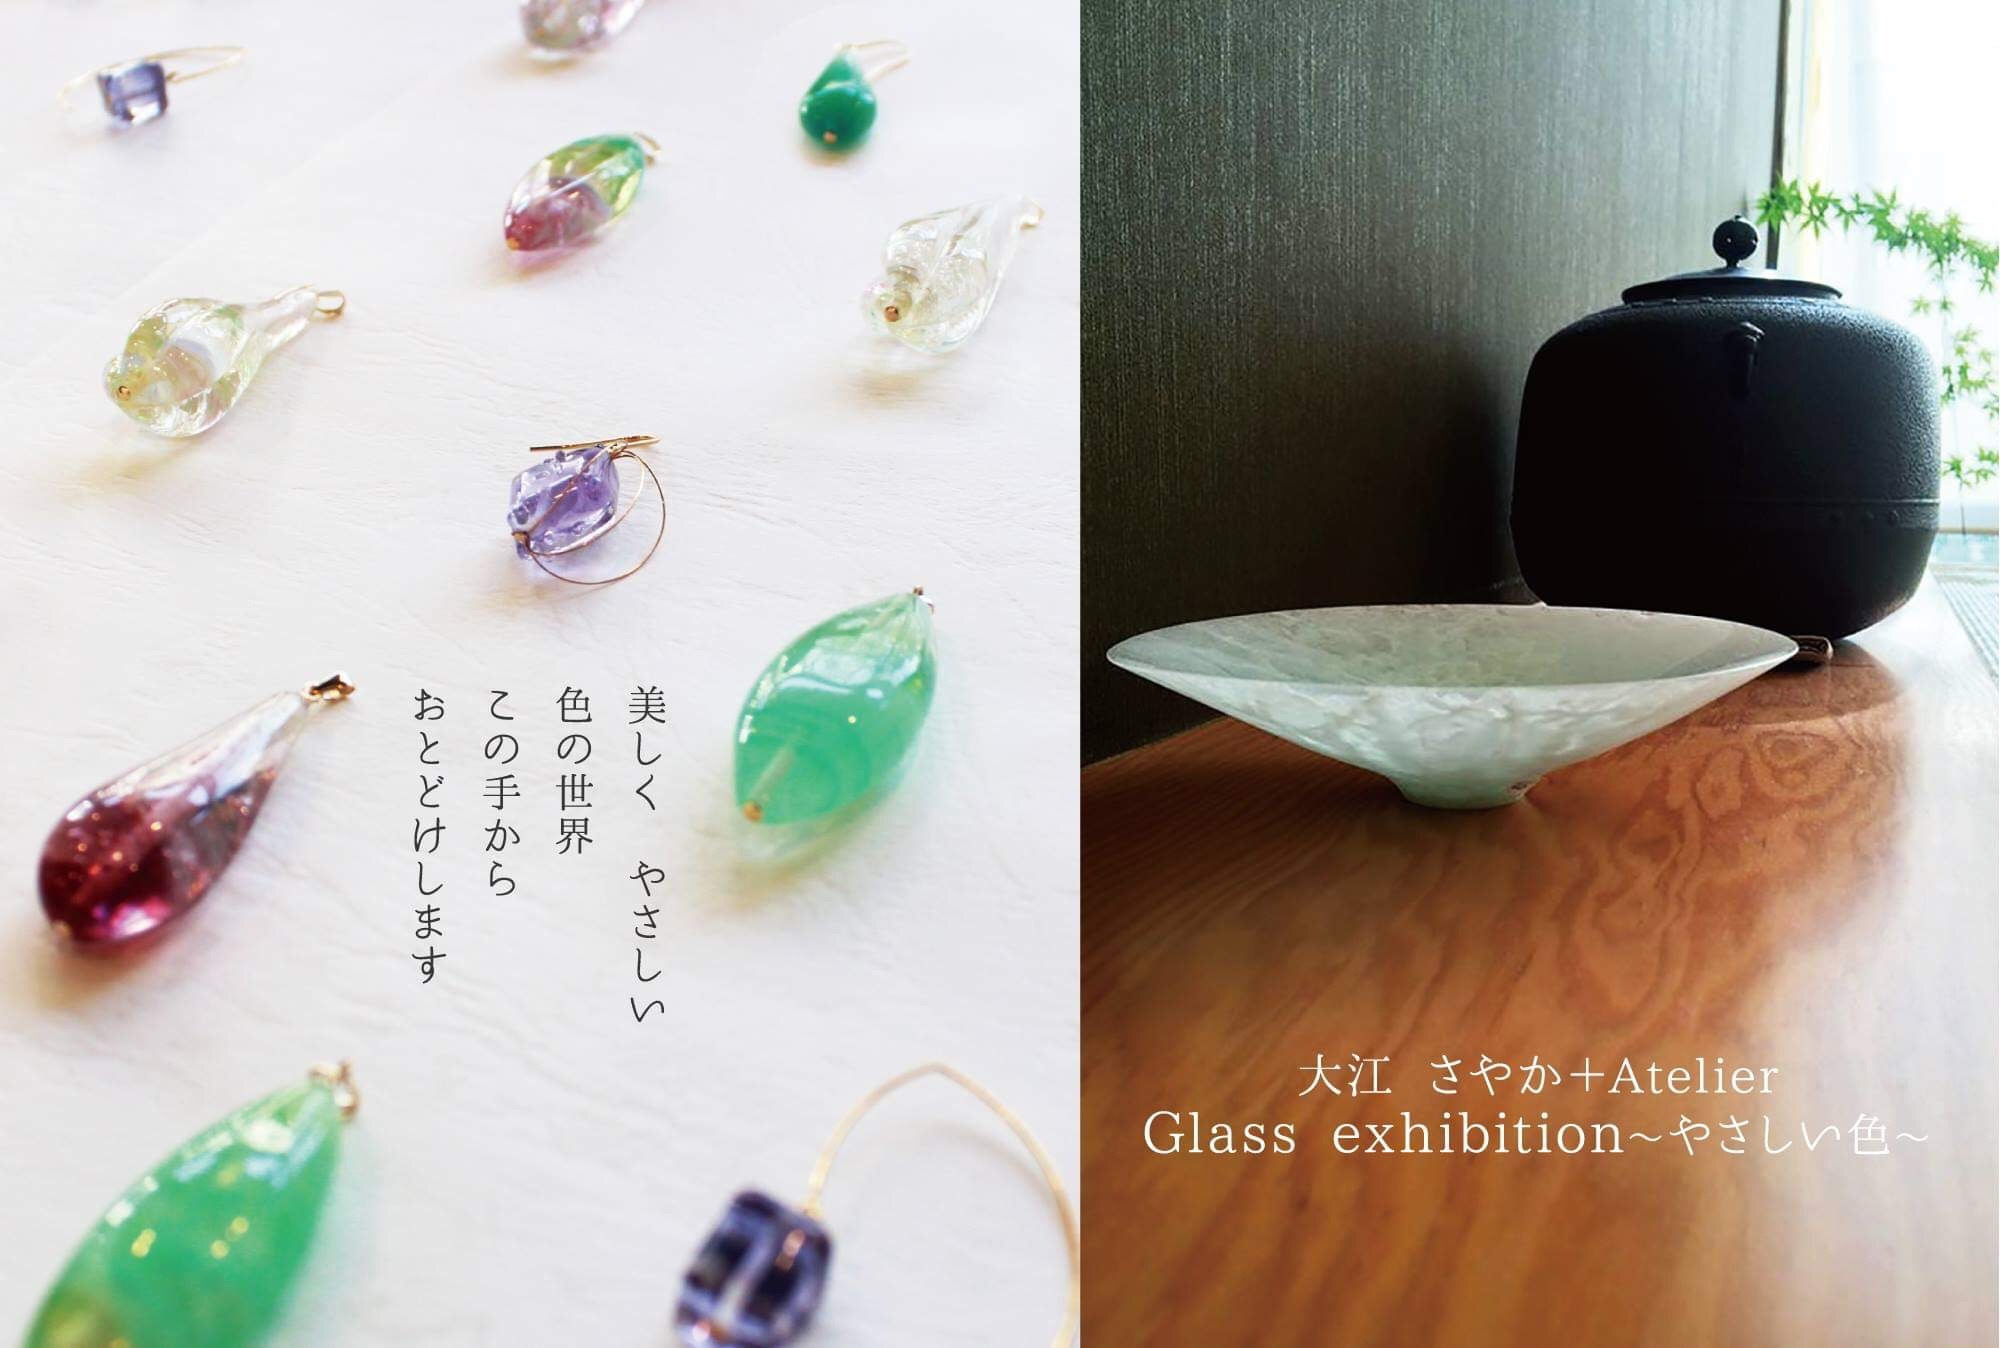 個展4―Sayaka Oe・Glass exhibition~やさしい色~_f0206741_13010907.jpeg